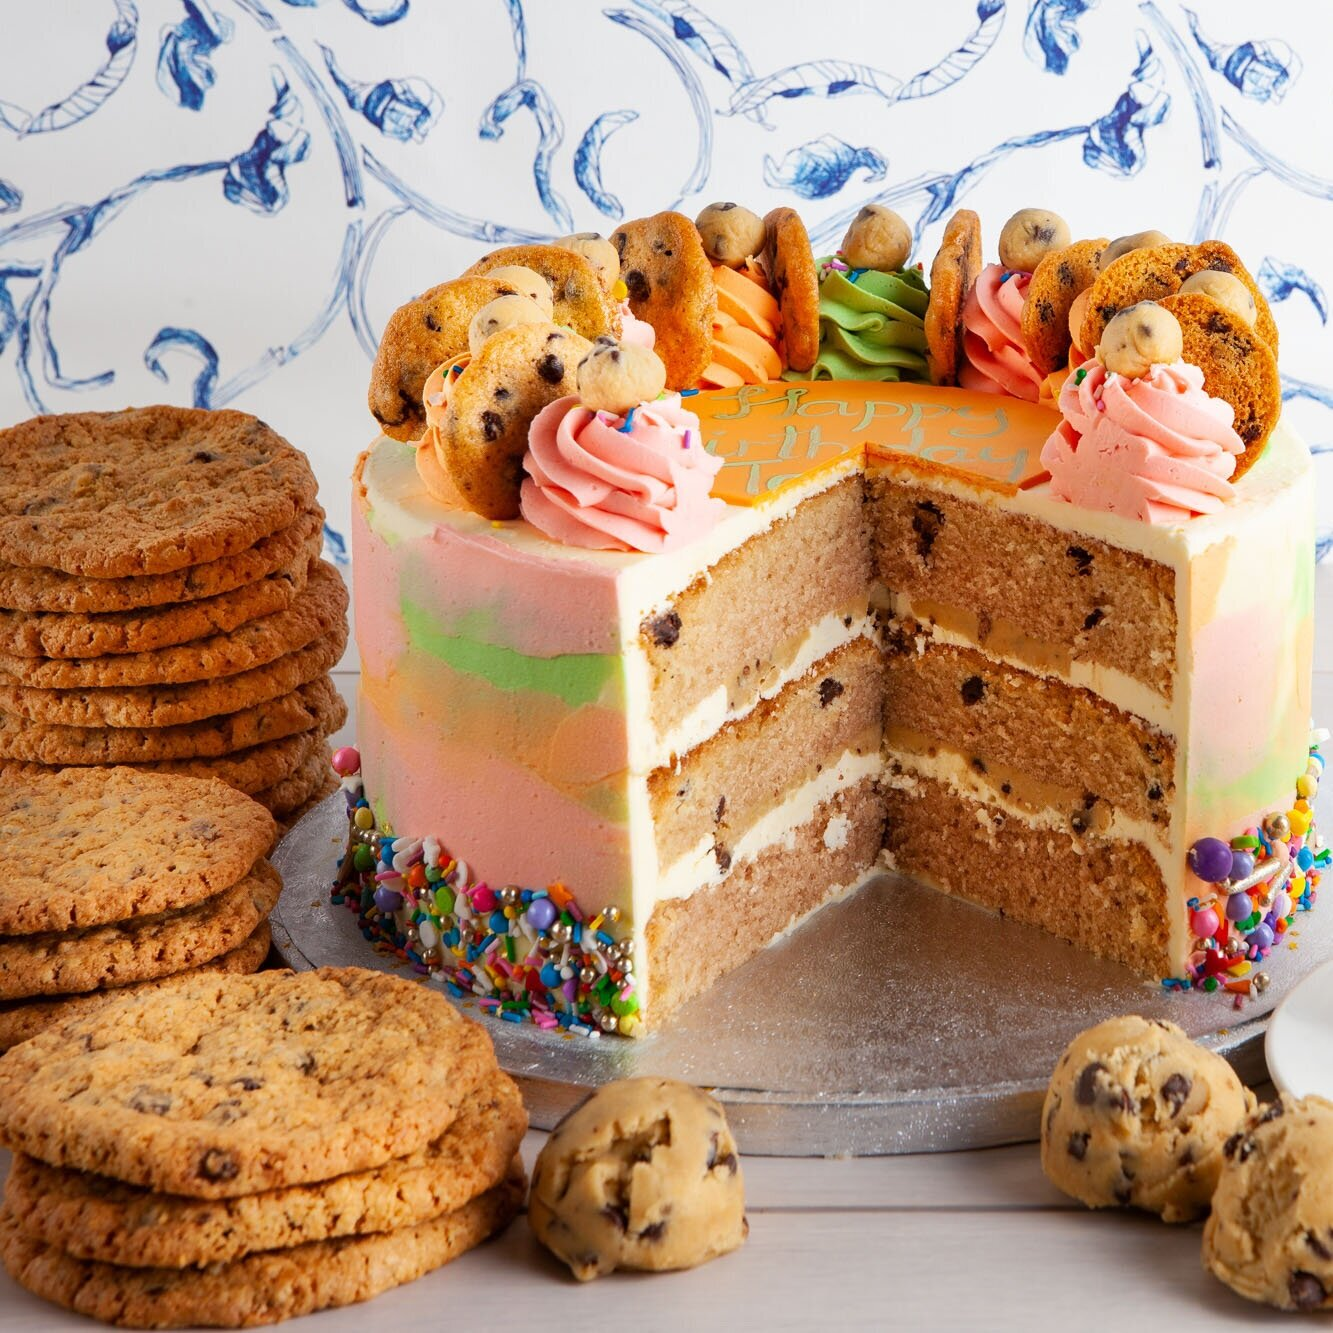 Cookie Dough Cake - For your cookie monster.